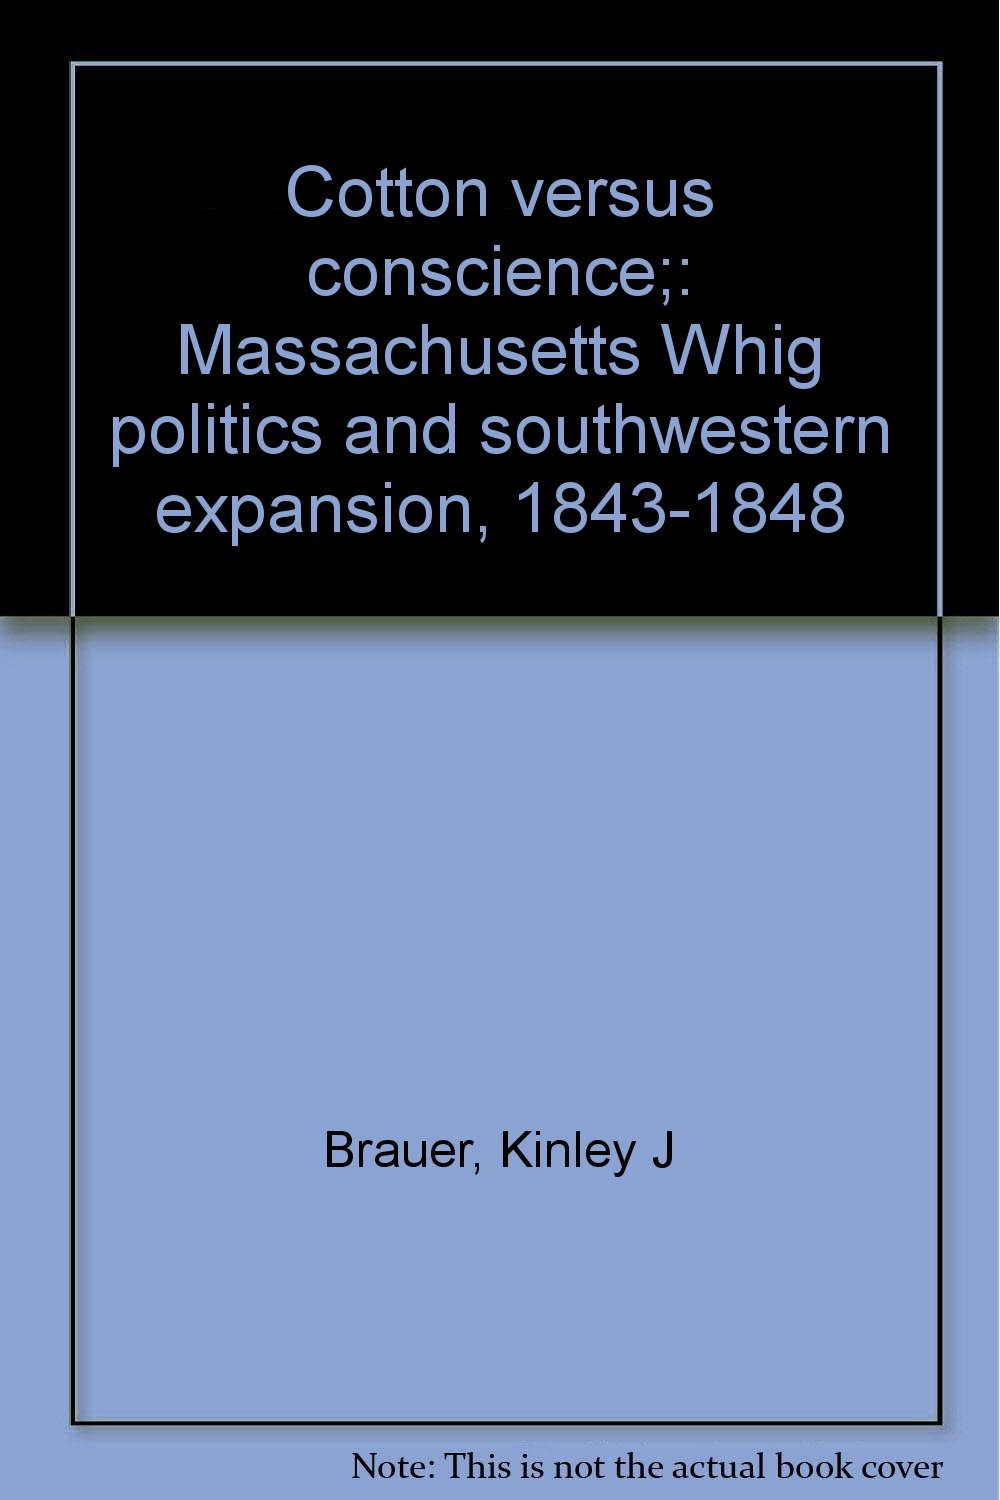 Image result for Cotton Versus Conscience: Massachusetts Whig Politics and Southwestern Expansion